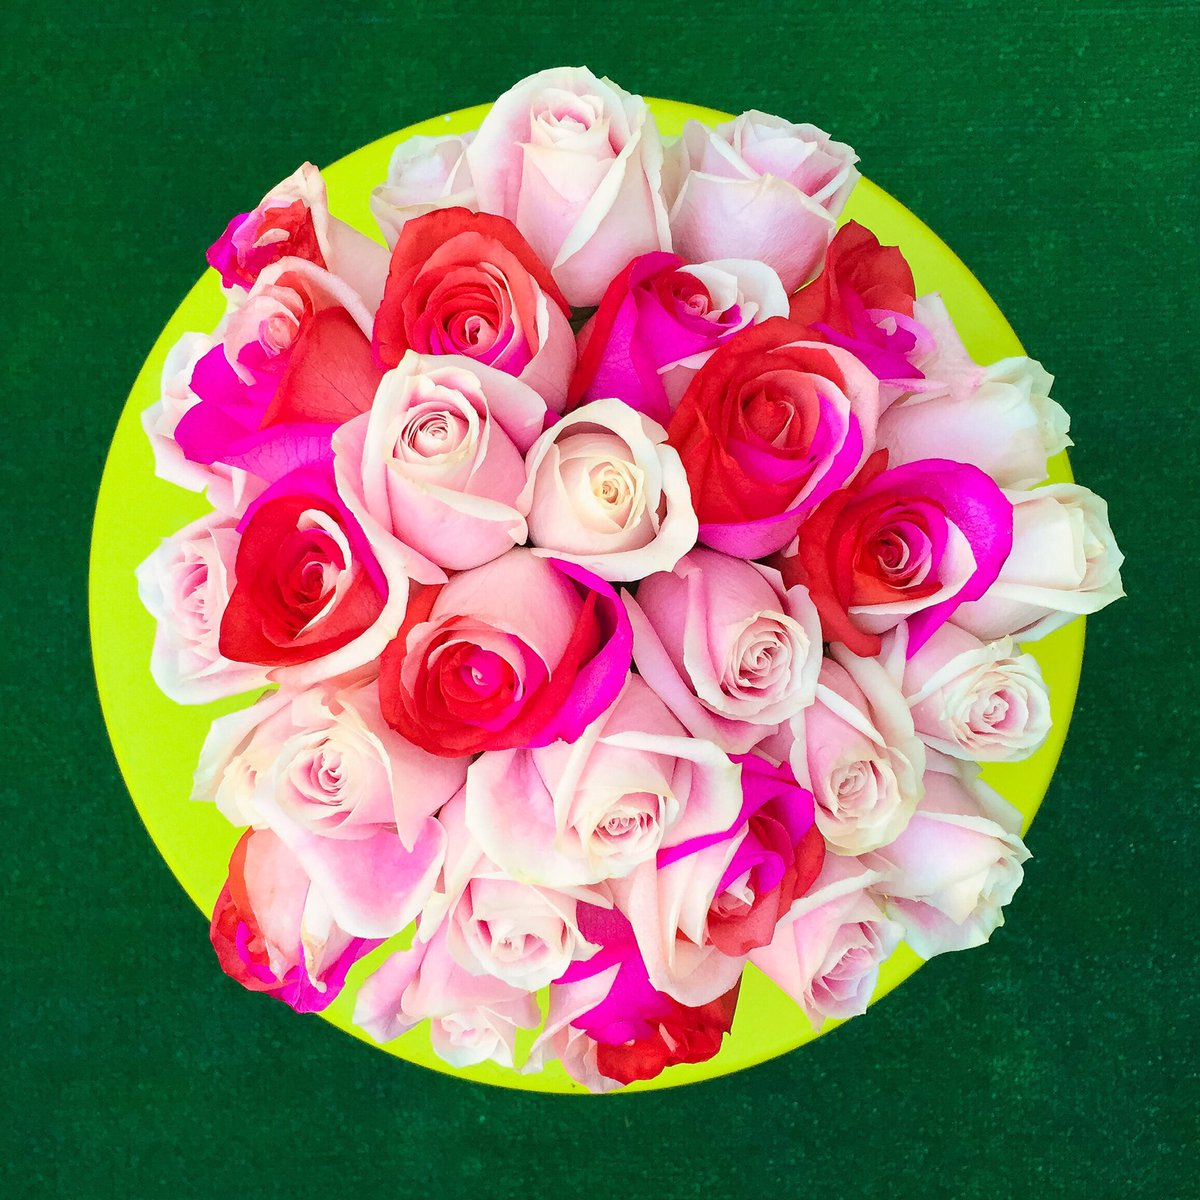 A combination of blush-colored #roses I bought for myself with a delivery of hot pink @ftdflowers!